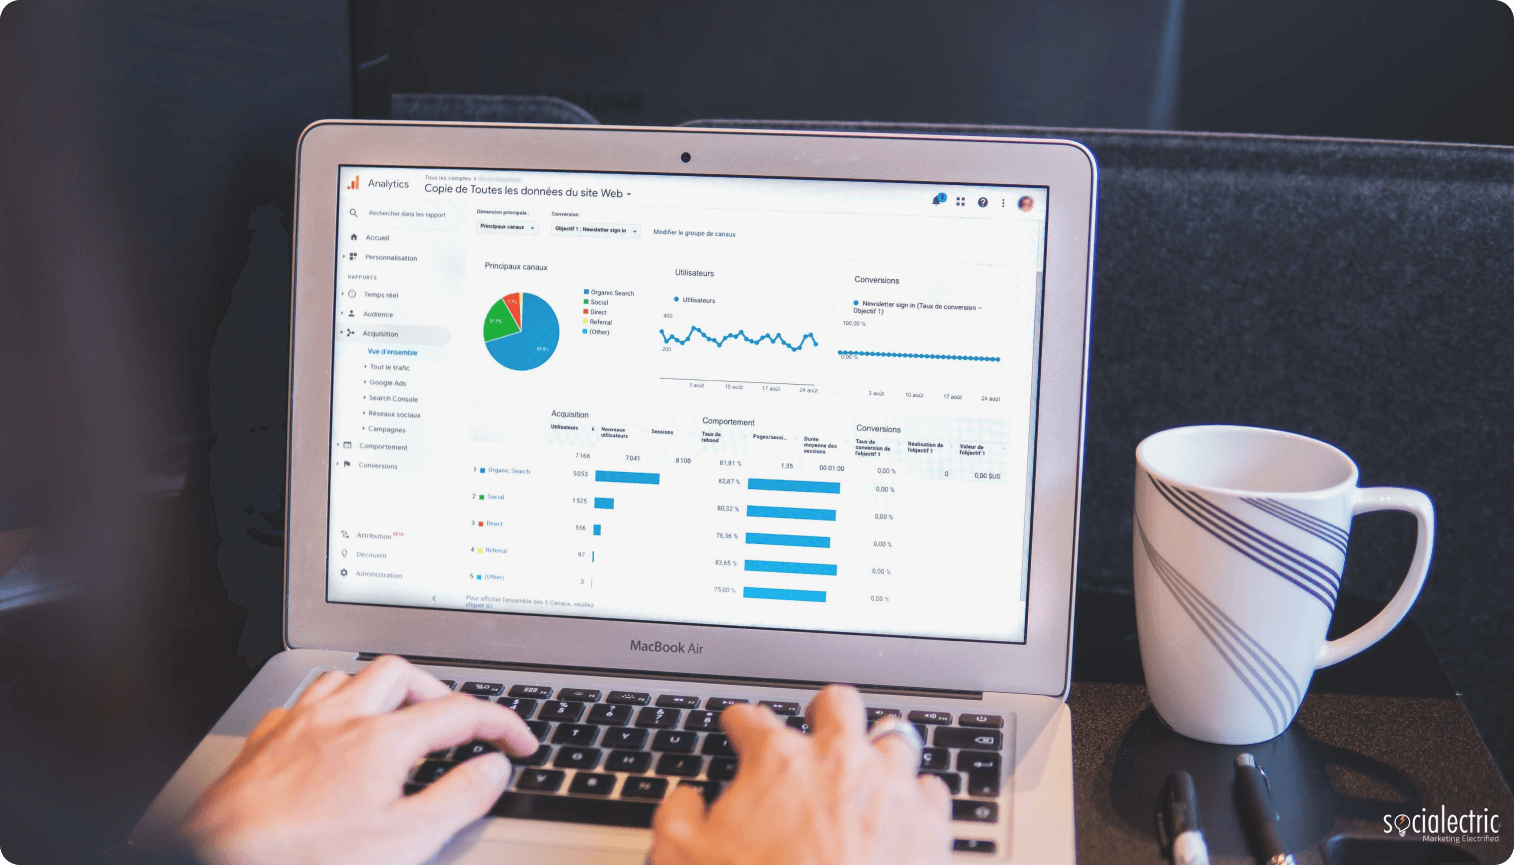 Google-Analytics-is-a-great-tool-to-track-your-website-performance